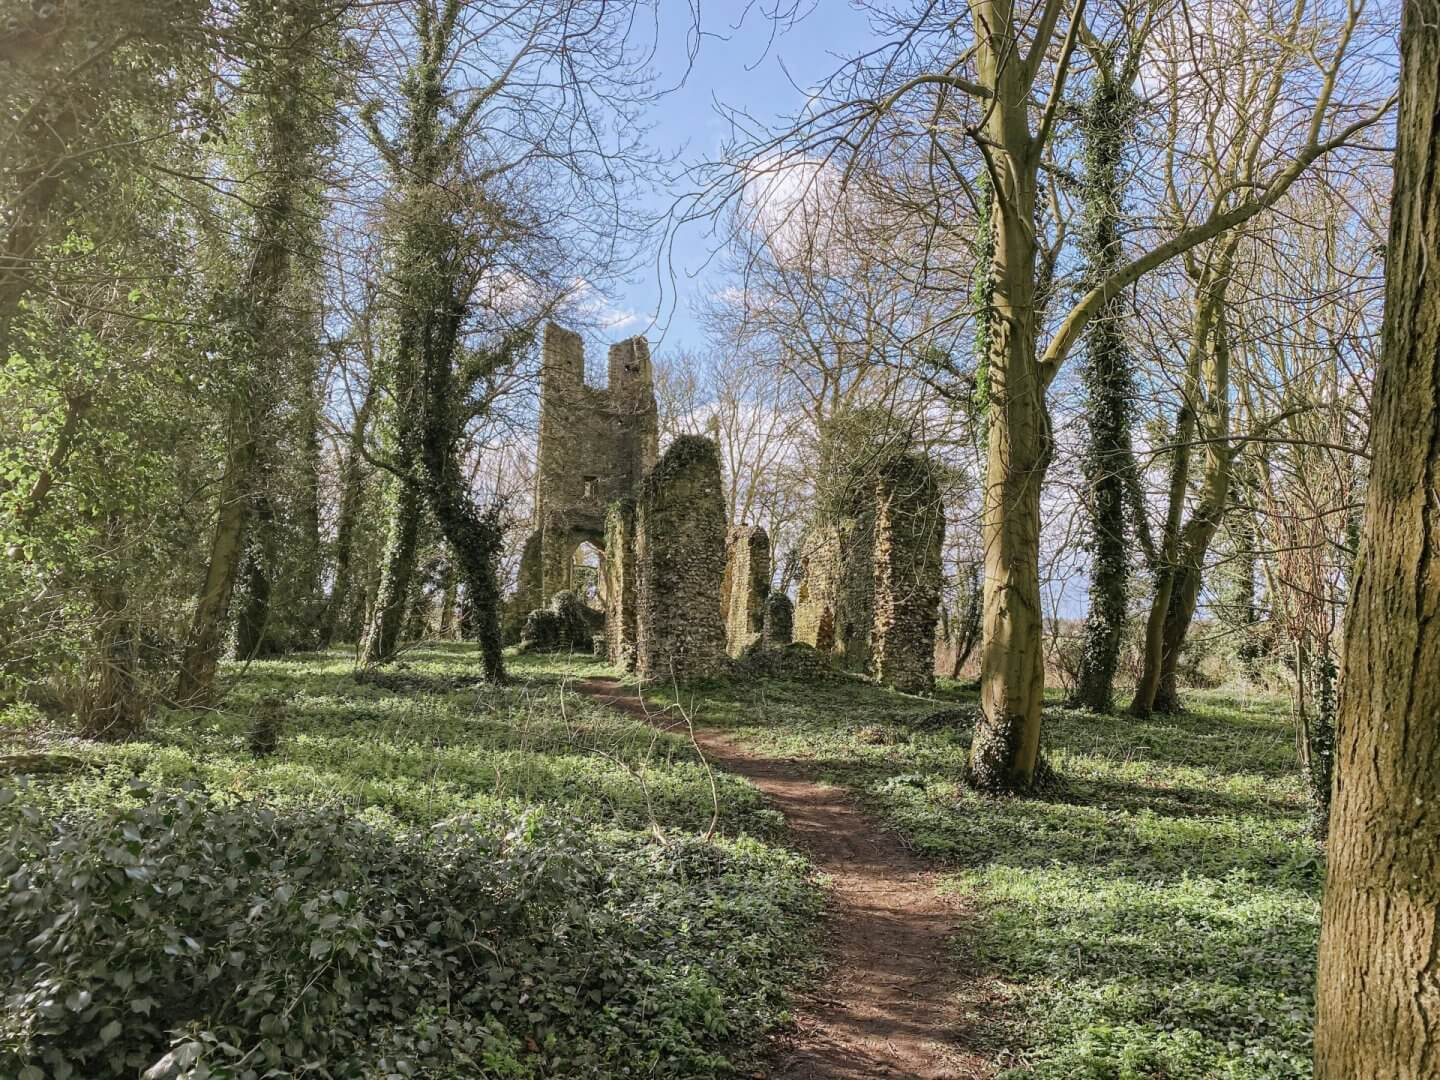 image of st marys ruins in Saxlingham Thorpe, Norfolk